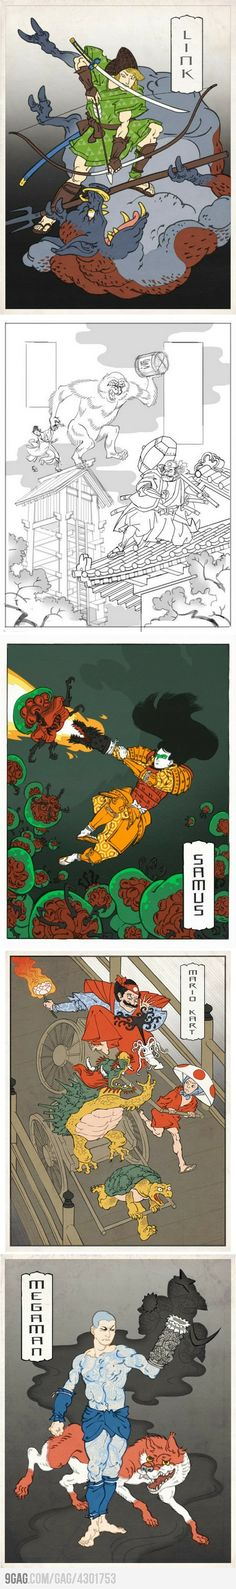 Nintendo Characters as Japanese Woodblock Prints